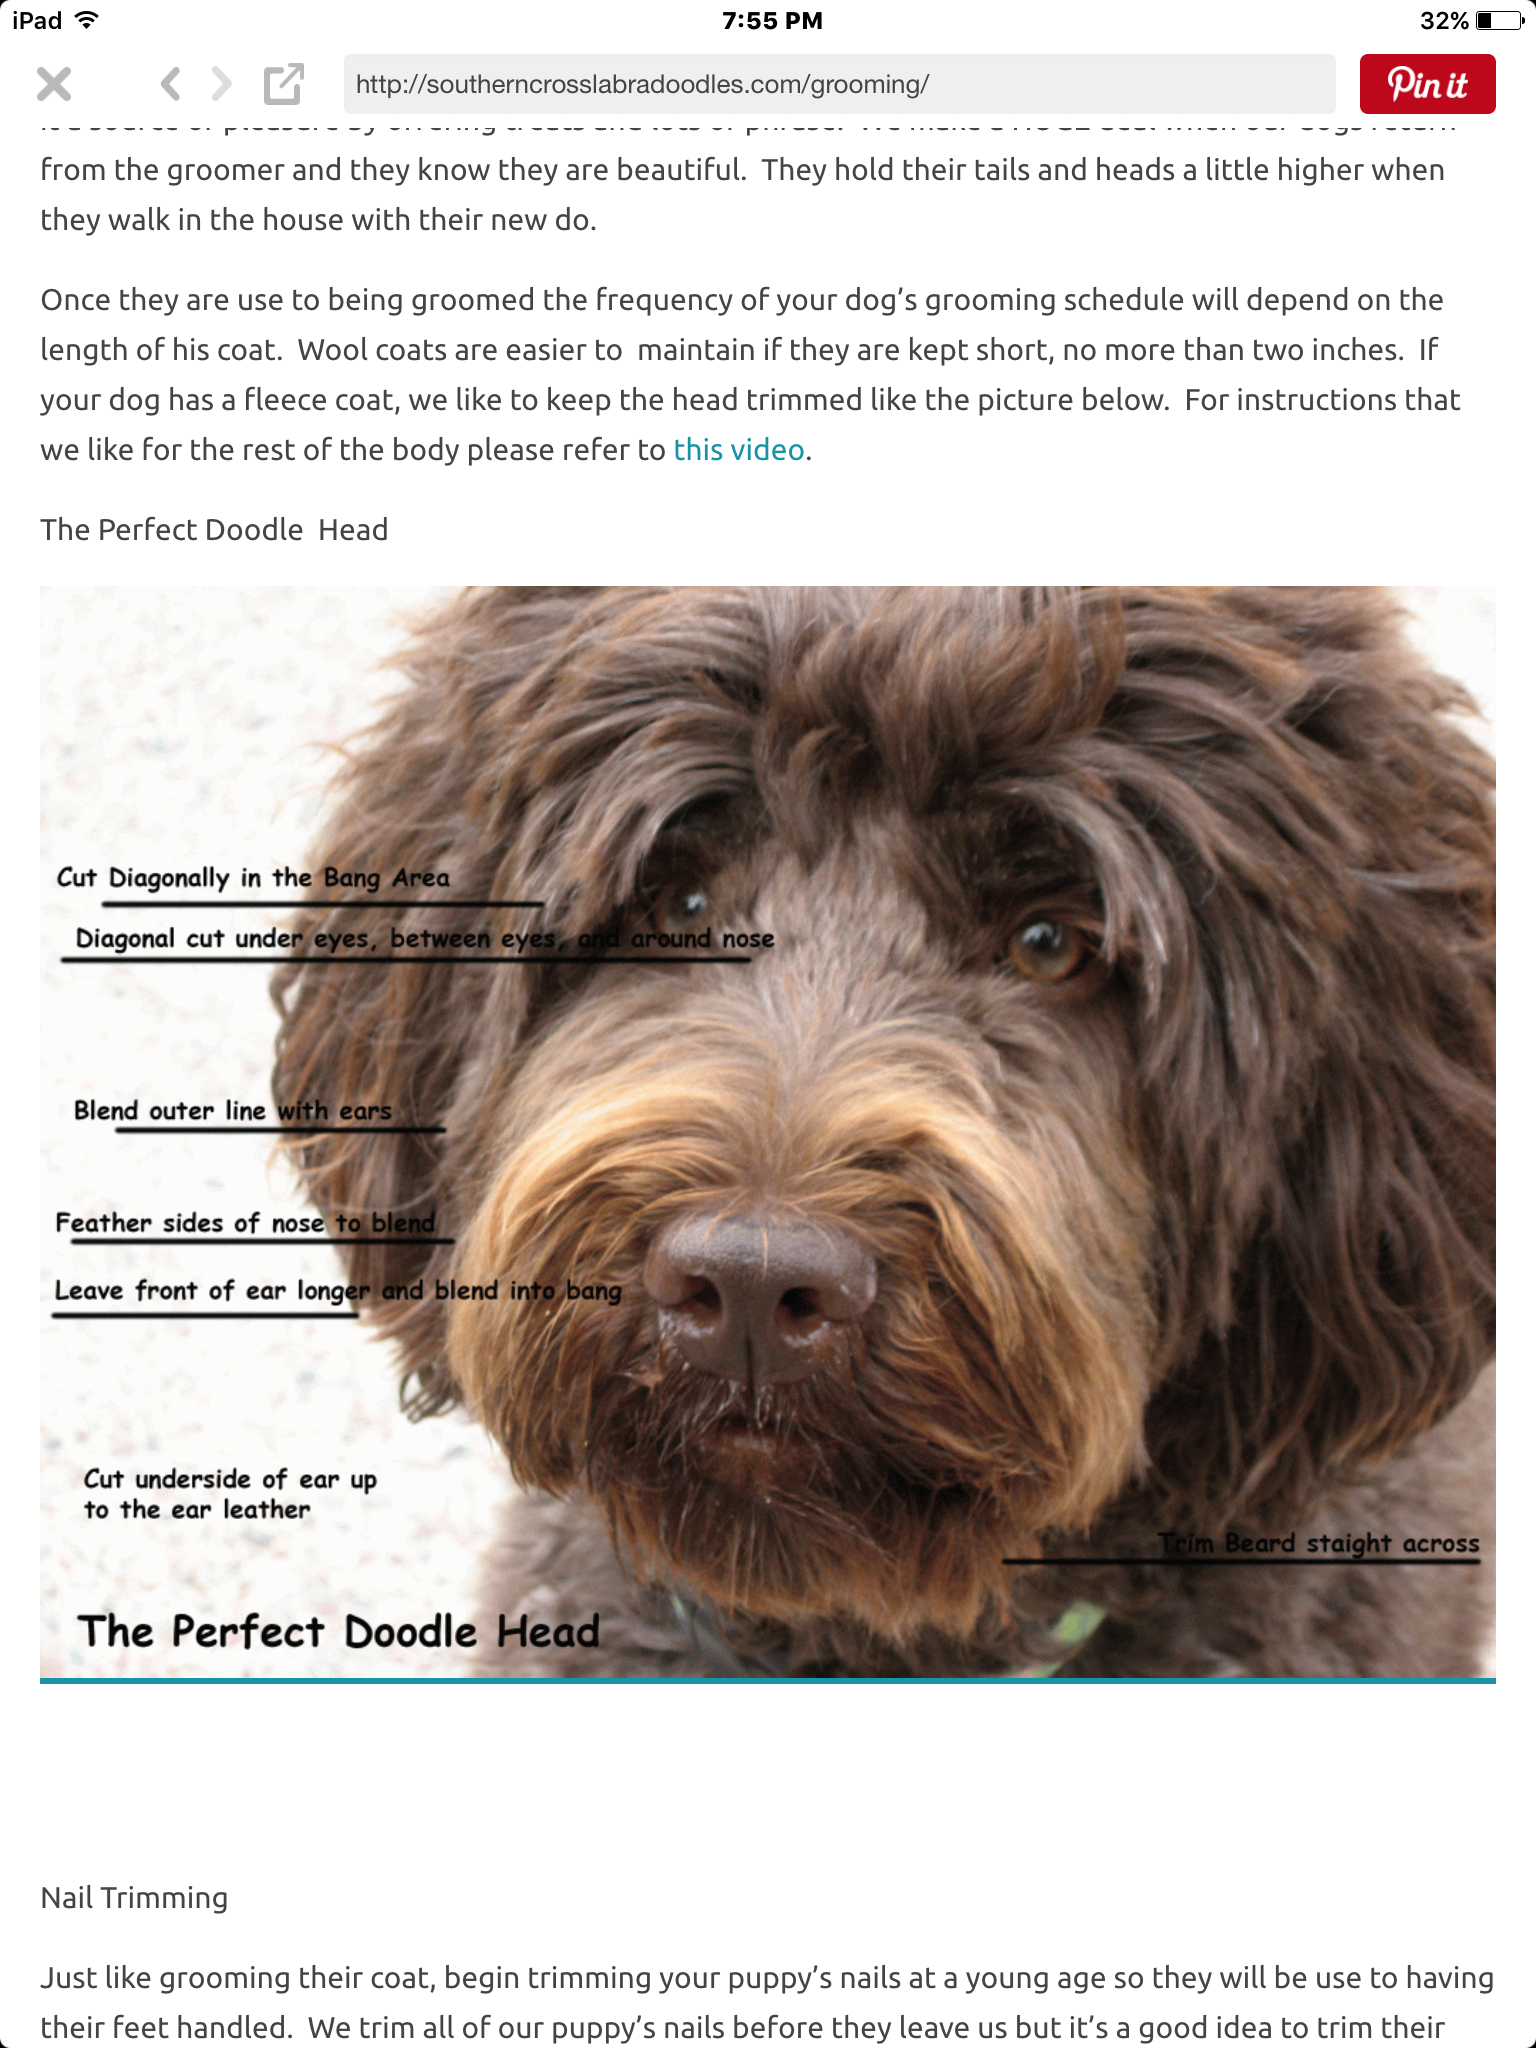 Pin By Sandy Tindall On Doodles Goldendoodle Grooming Labradoodle Grooming Dog Grooming Styles